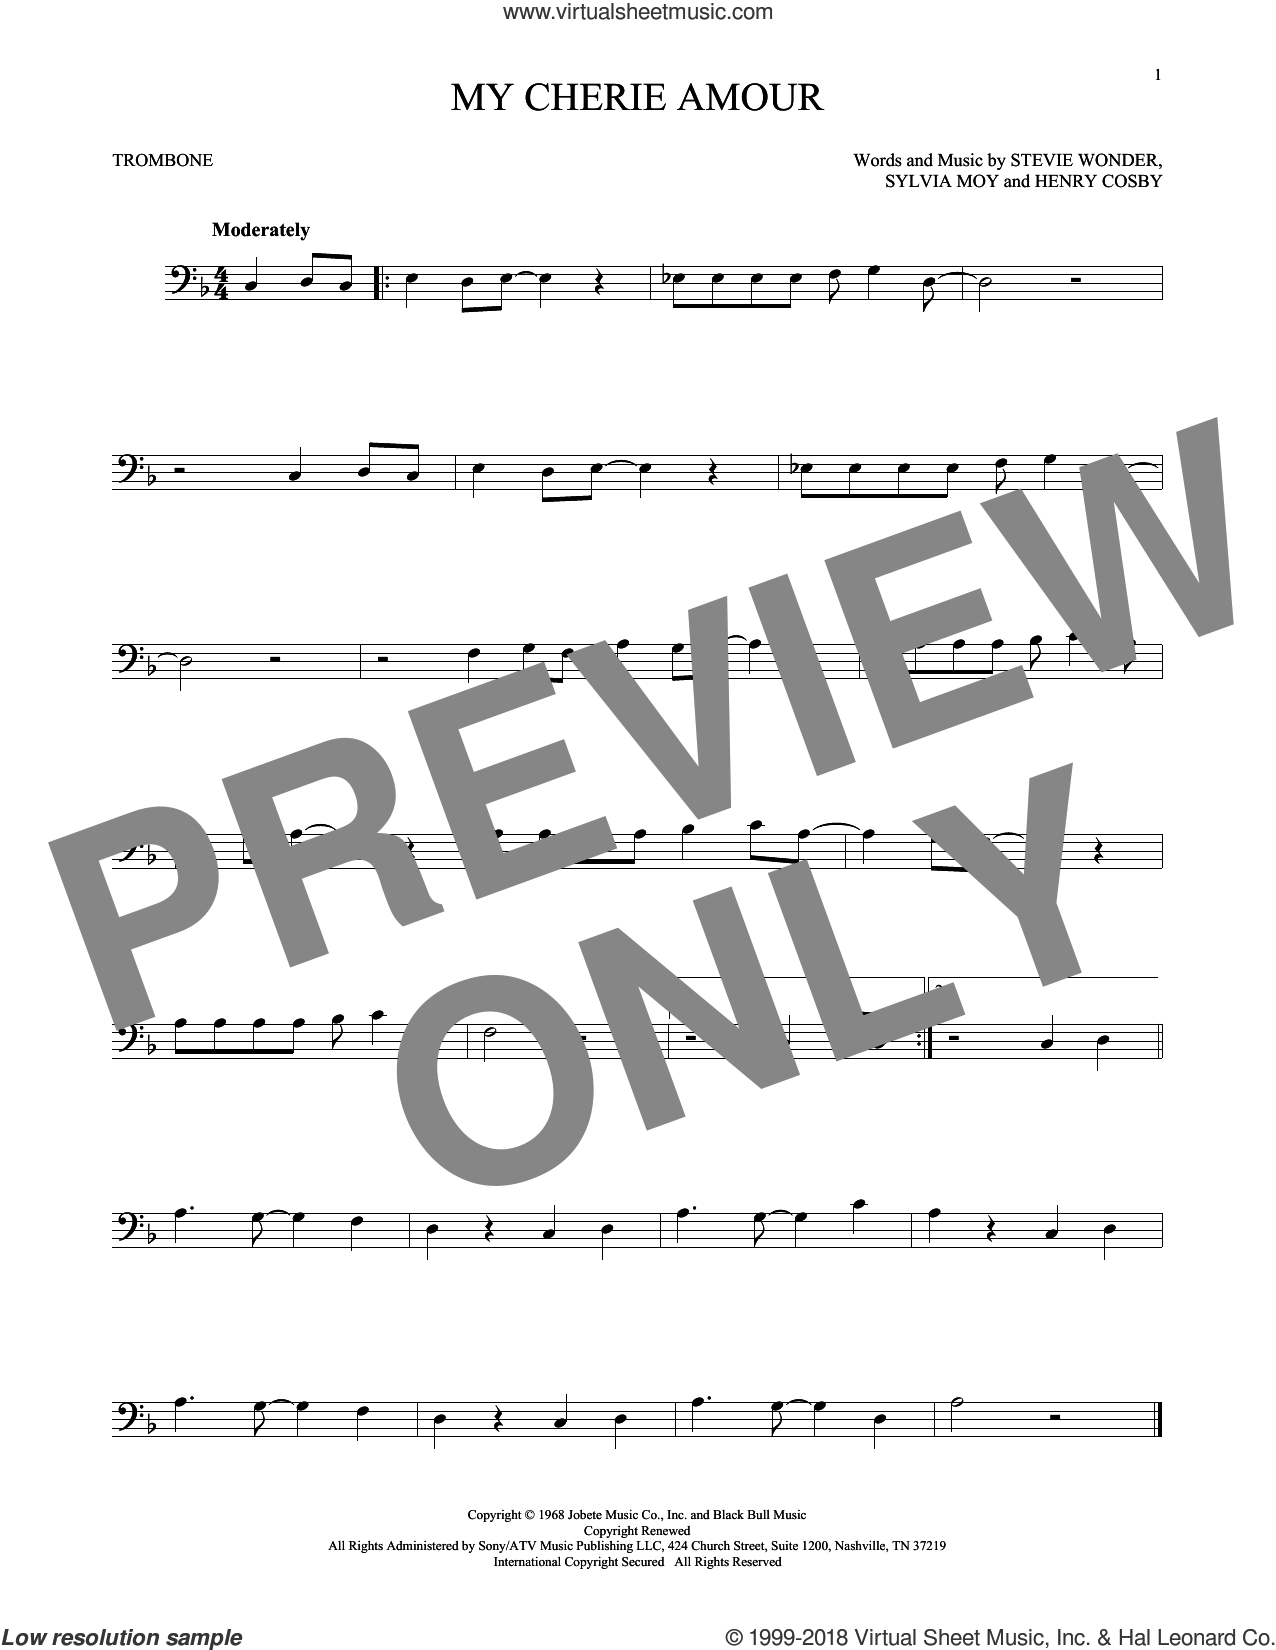 My Cherie Amour sheet music for trombone solo by Stevie Wonder, Henry Cosby and Sylvia Moy, intermediate